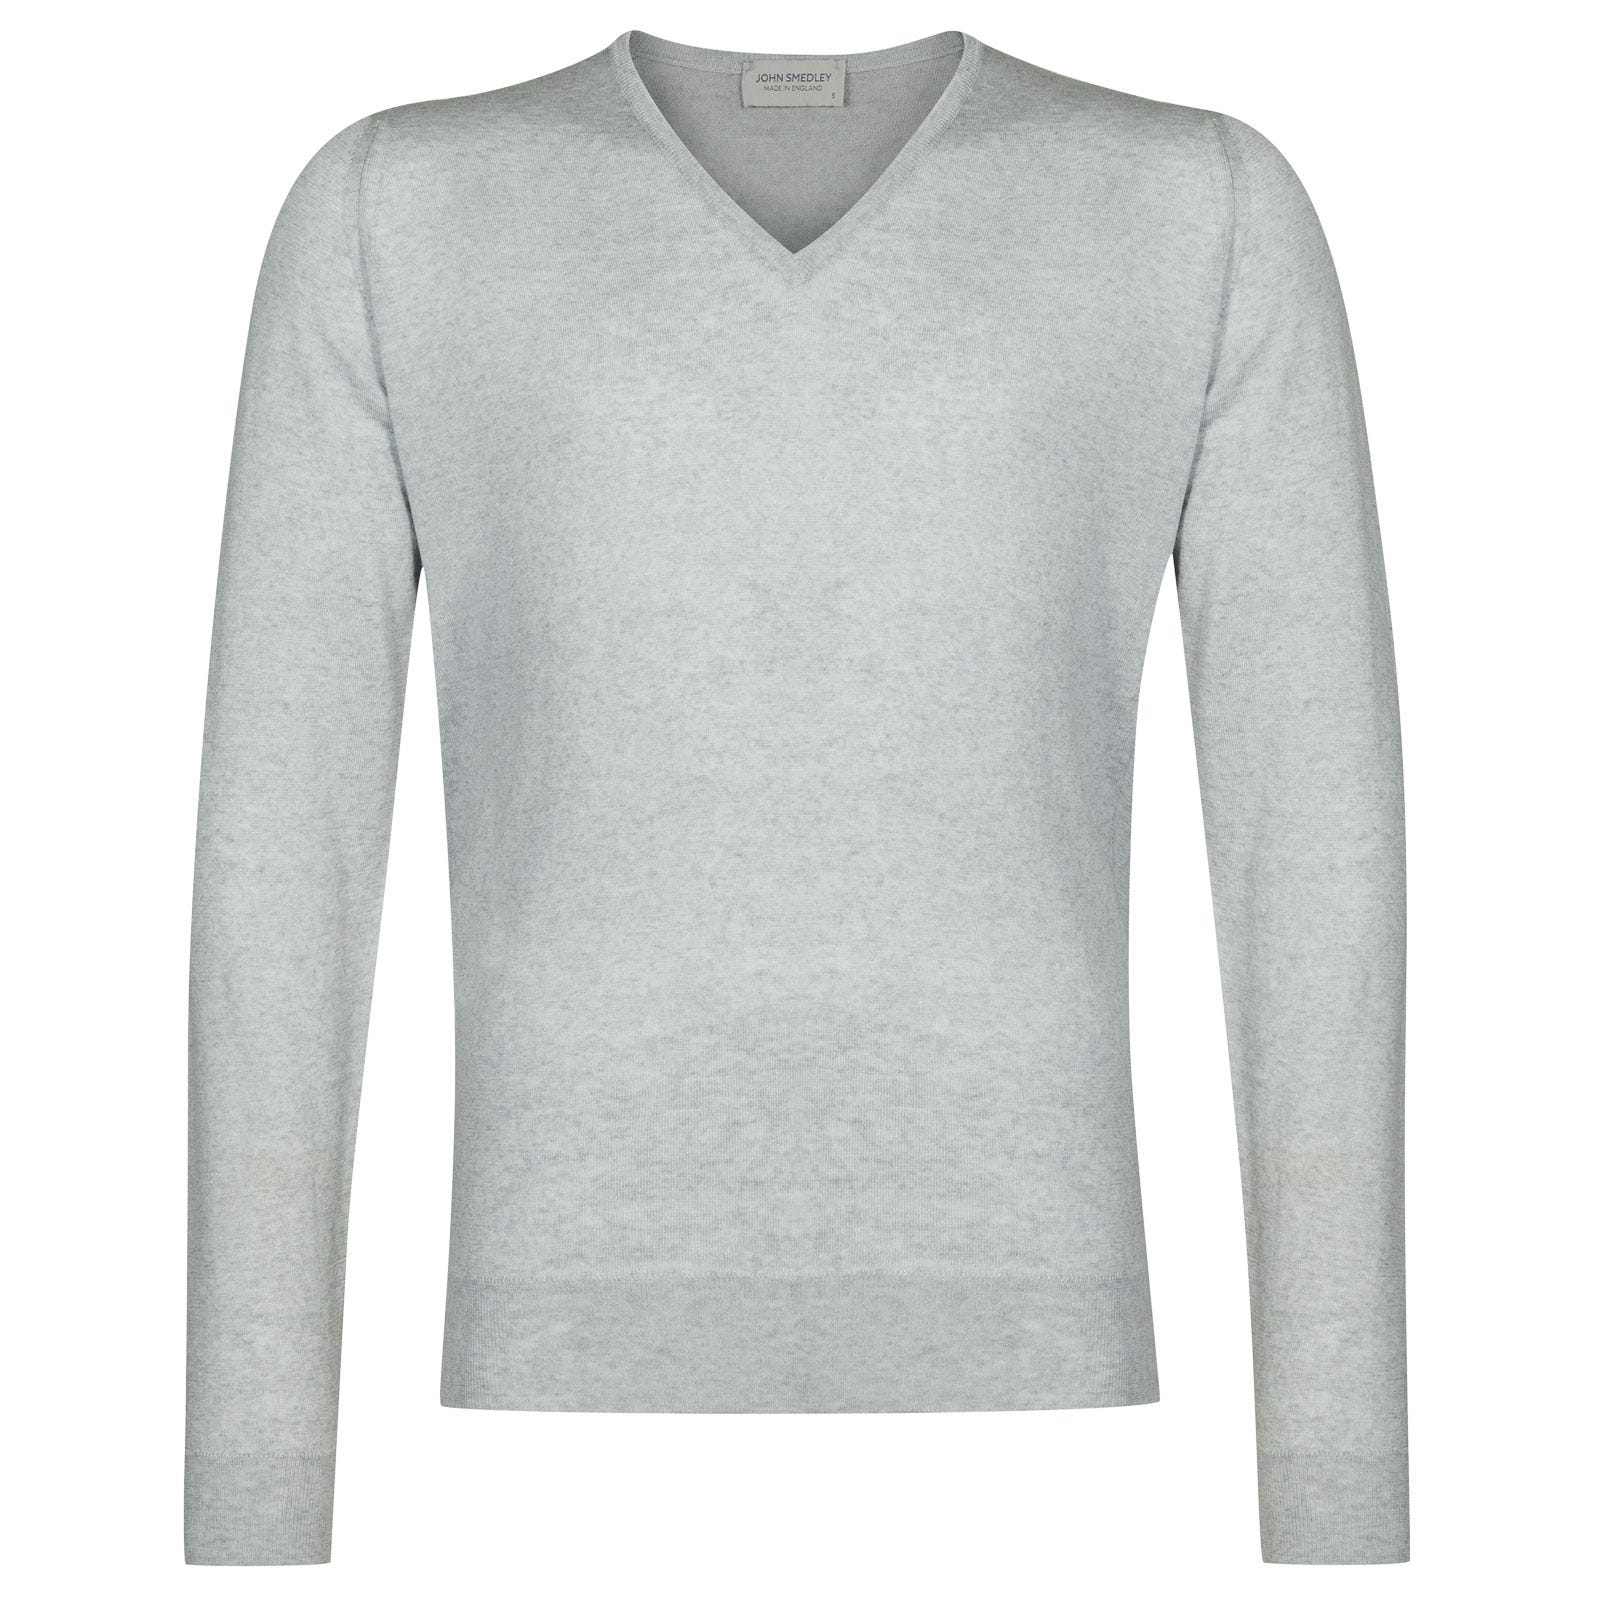 John Smedley Blenheim Merino Wool Pullover in Bardot Grey-XL